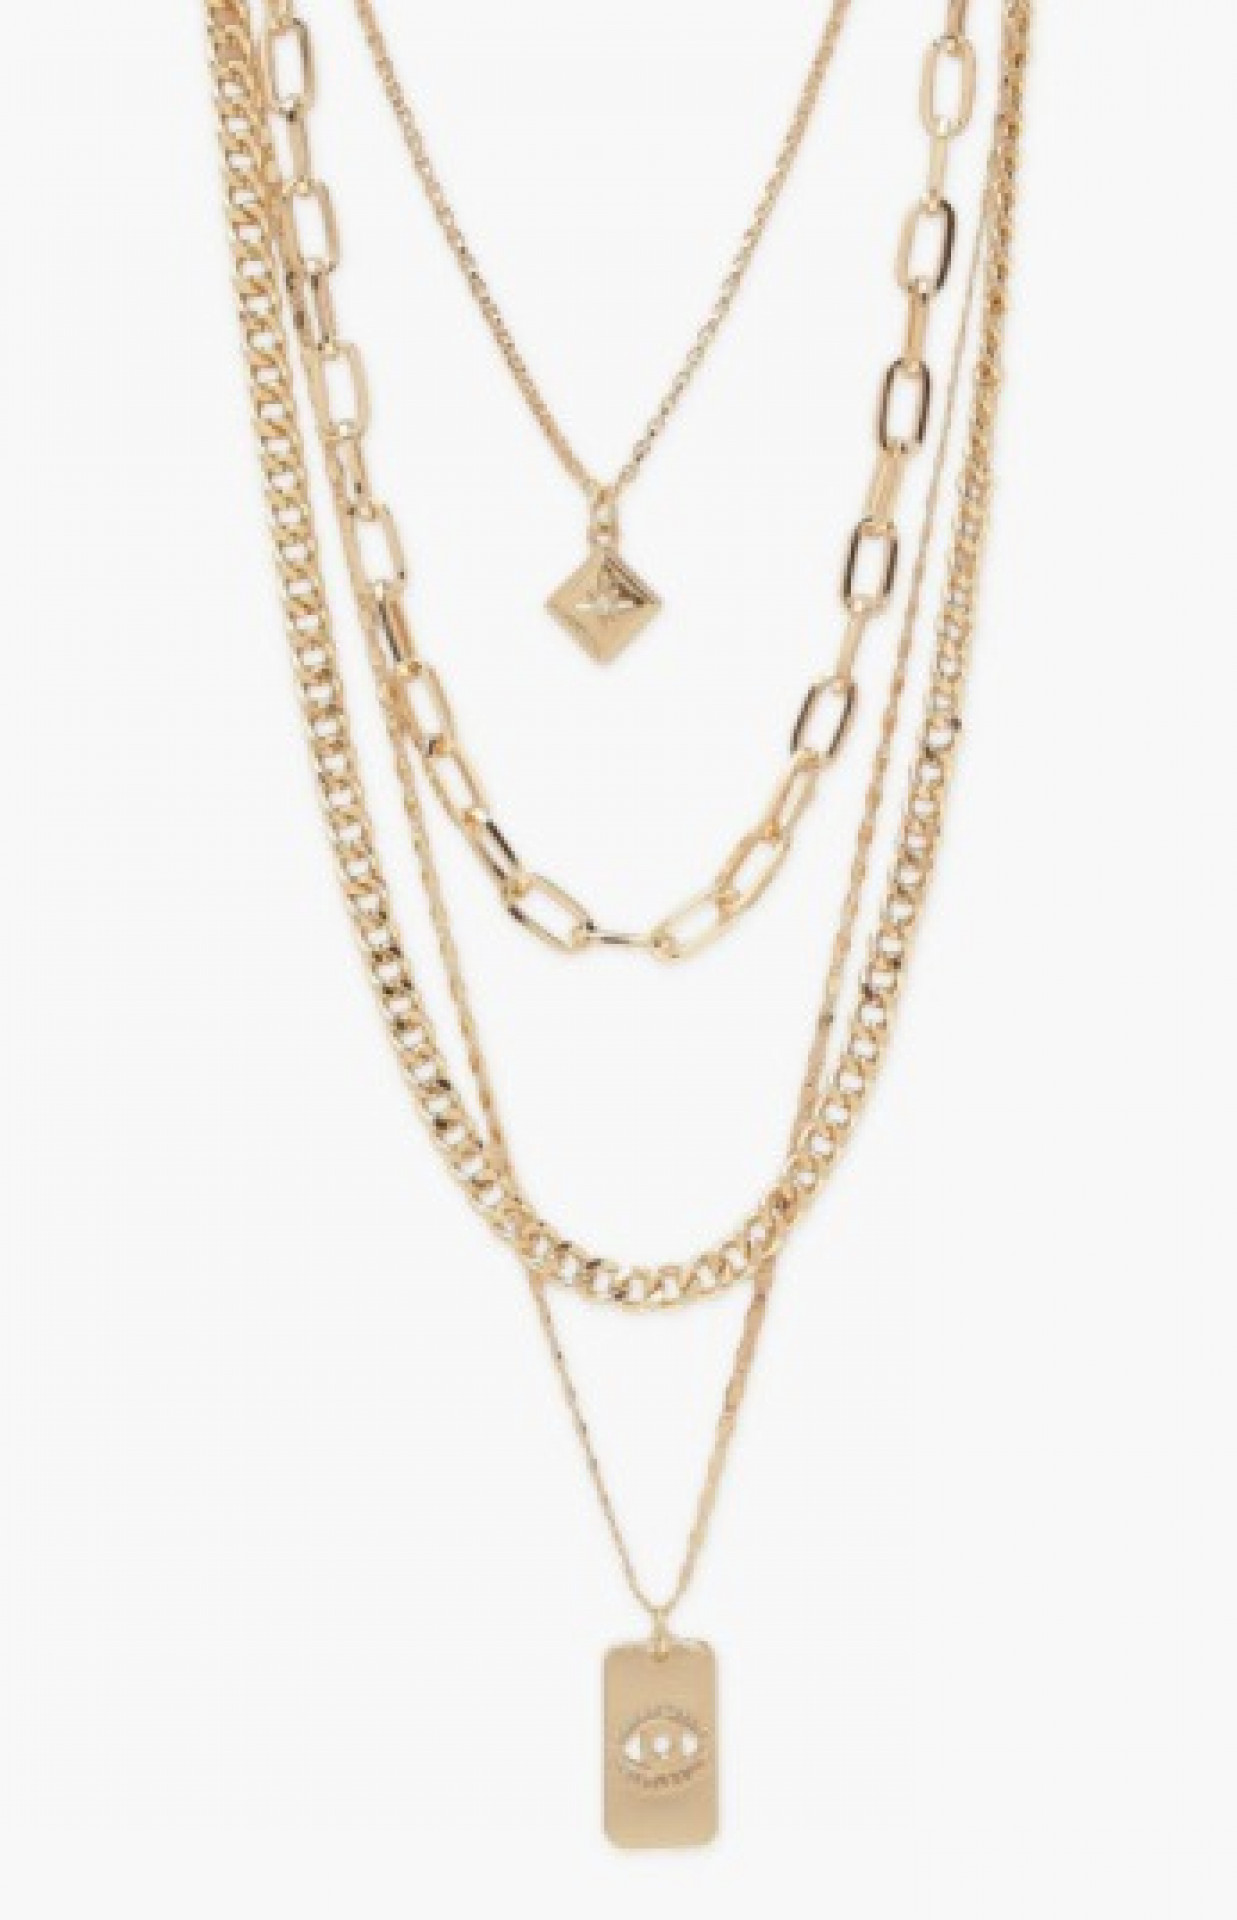 Chunky Chain and Pendant Layered Necklace